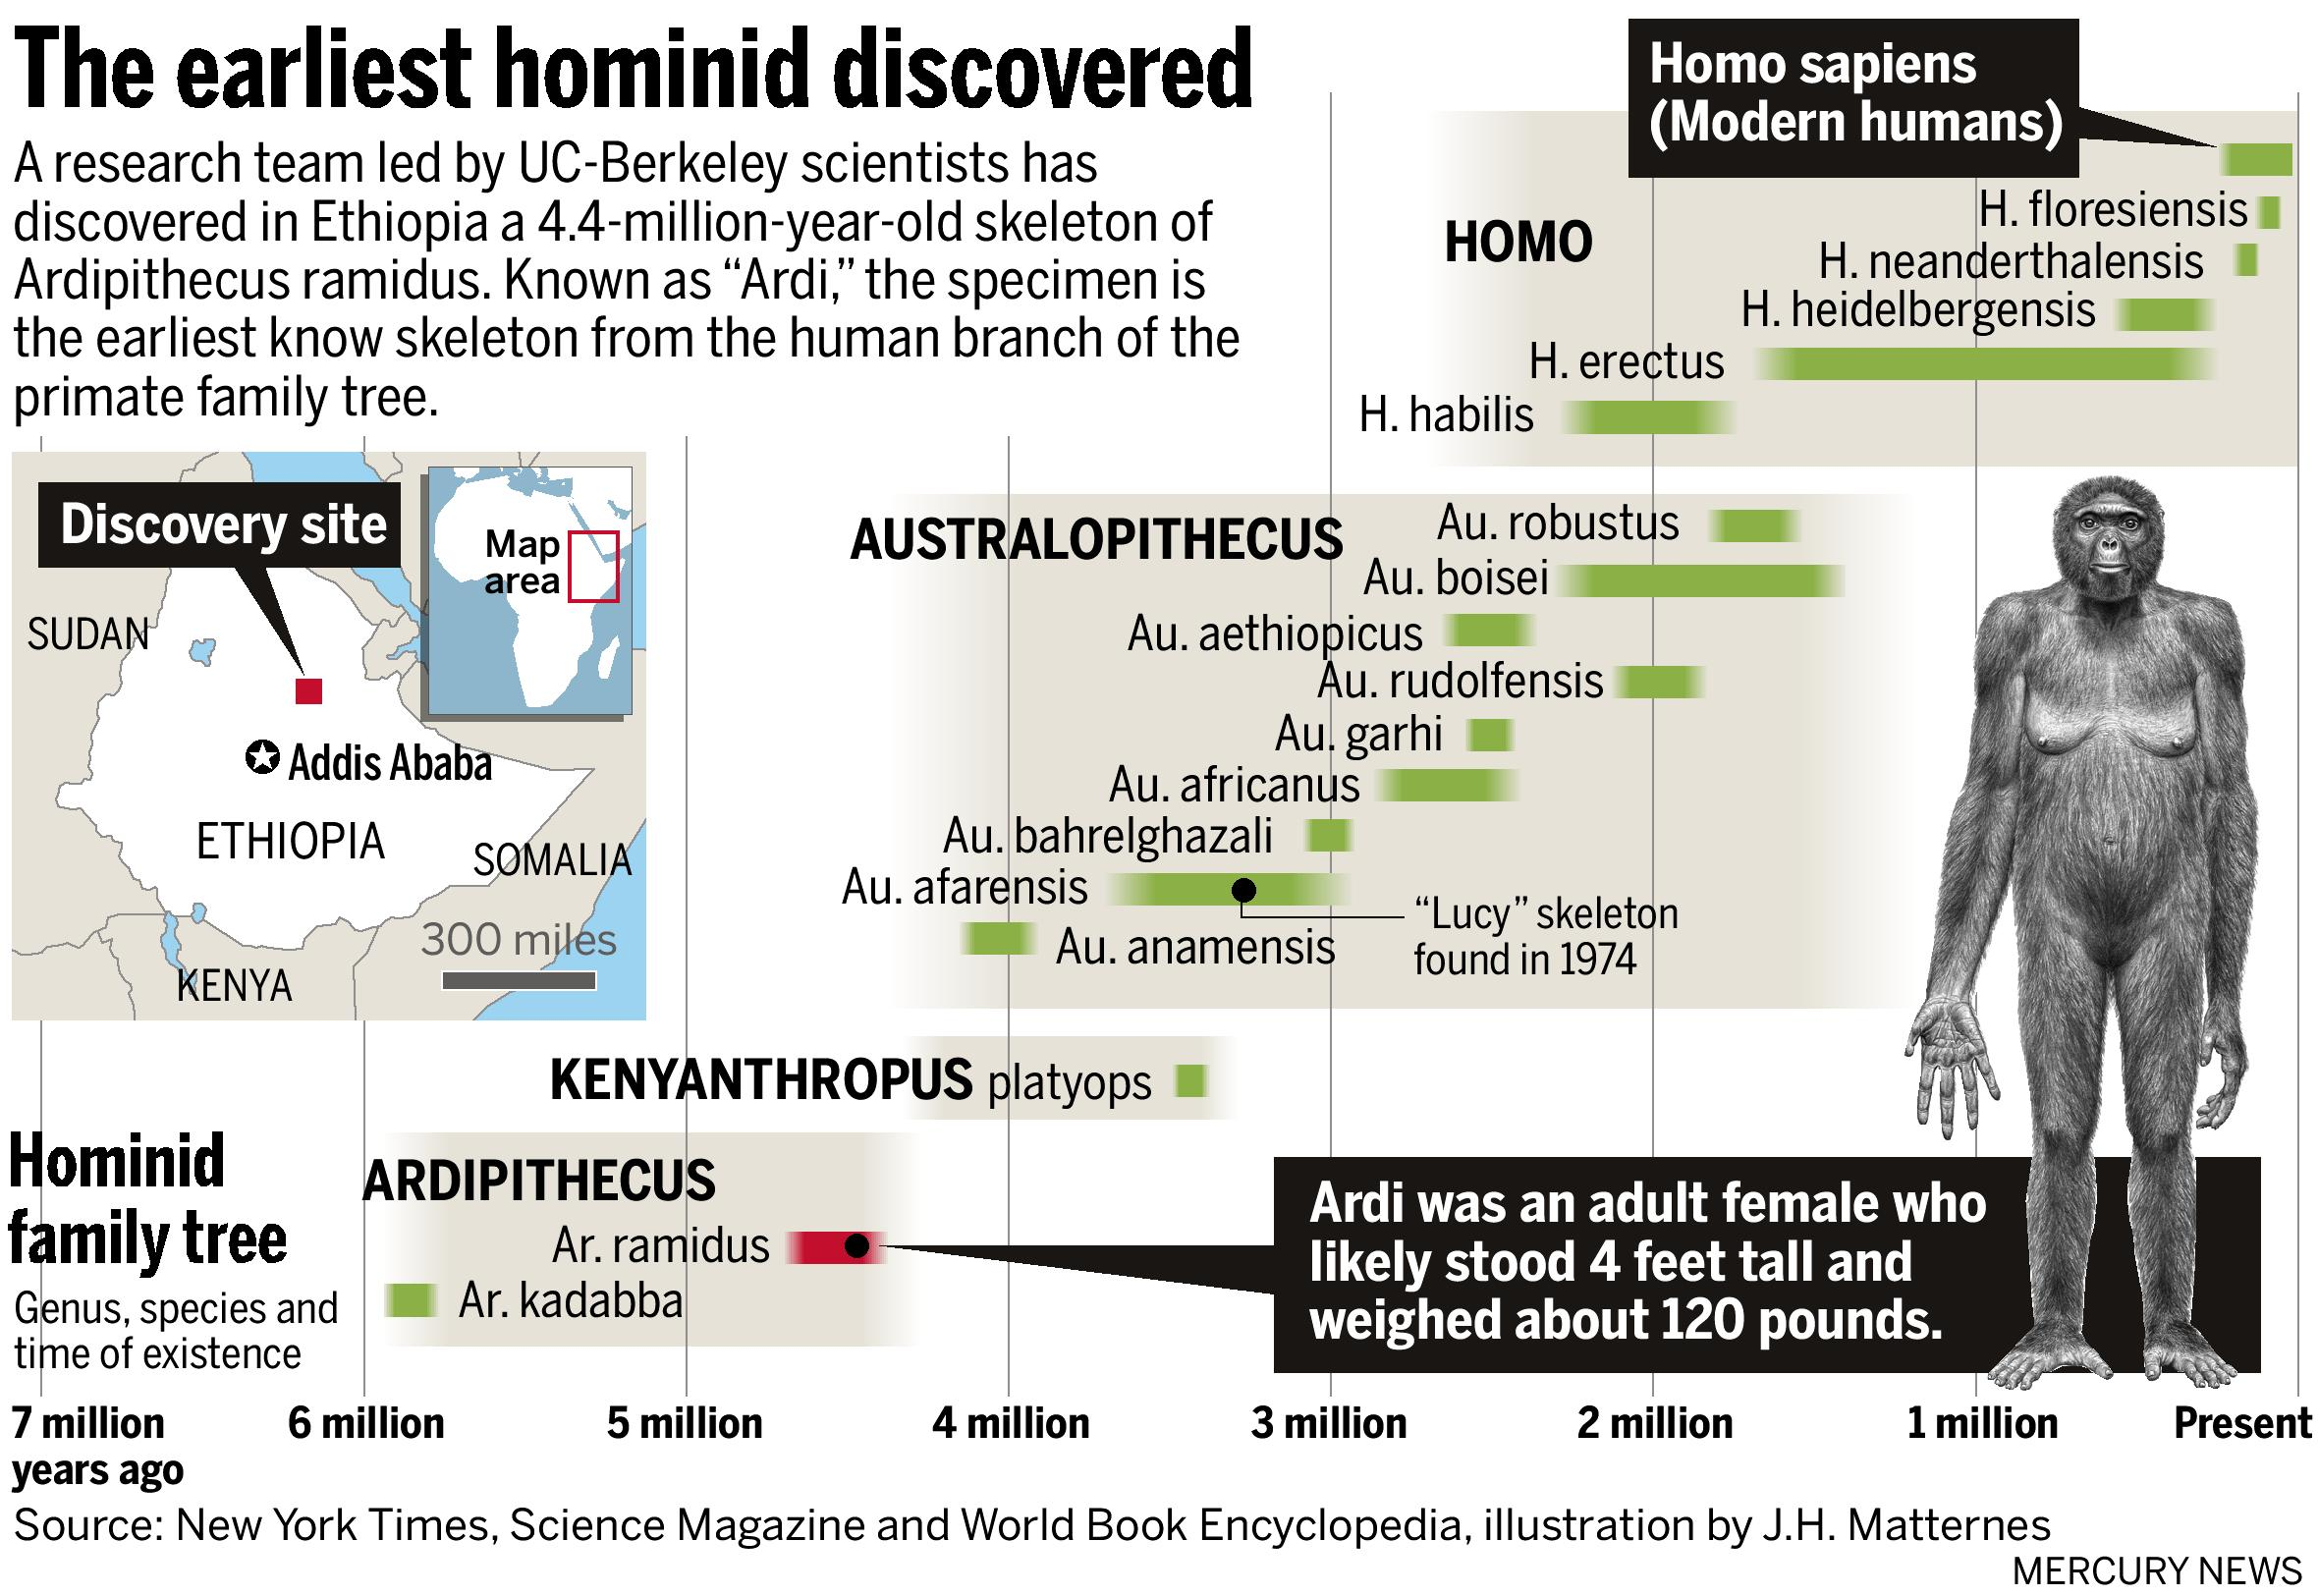 an analysis of the archaeological discovery of australopithecus afarensis lucy Reconstruction of lucy (australopithecus afarensis) read articles about the latest theories and archaeological discoveries about human origins an analysis of hominid skull from dmanisi suggests the earliest homo - homo habilis.